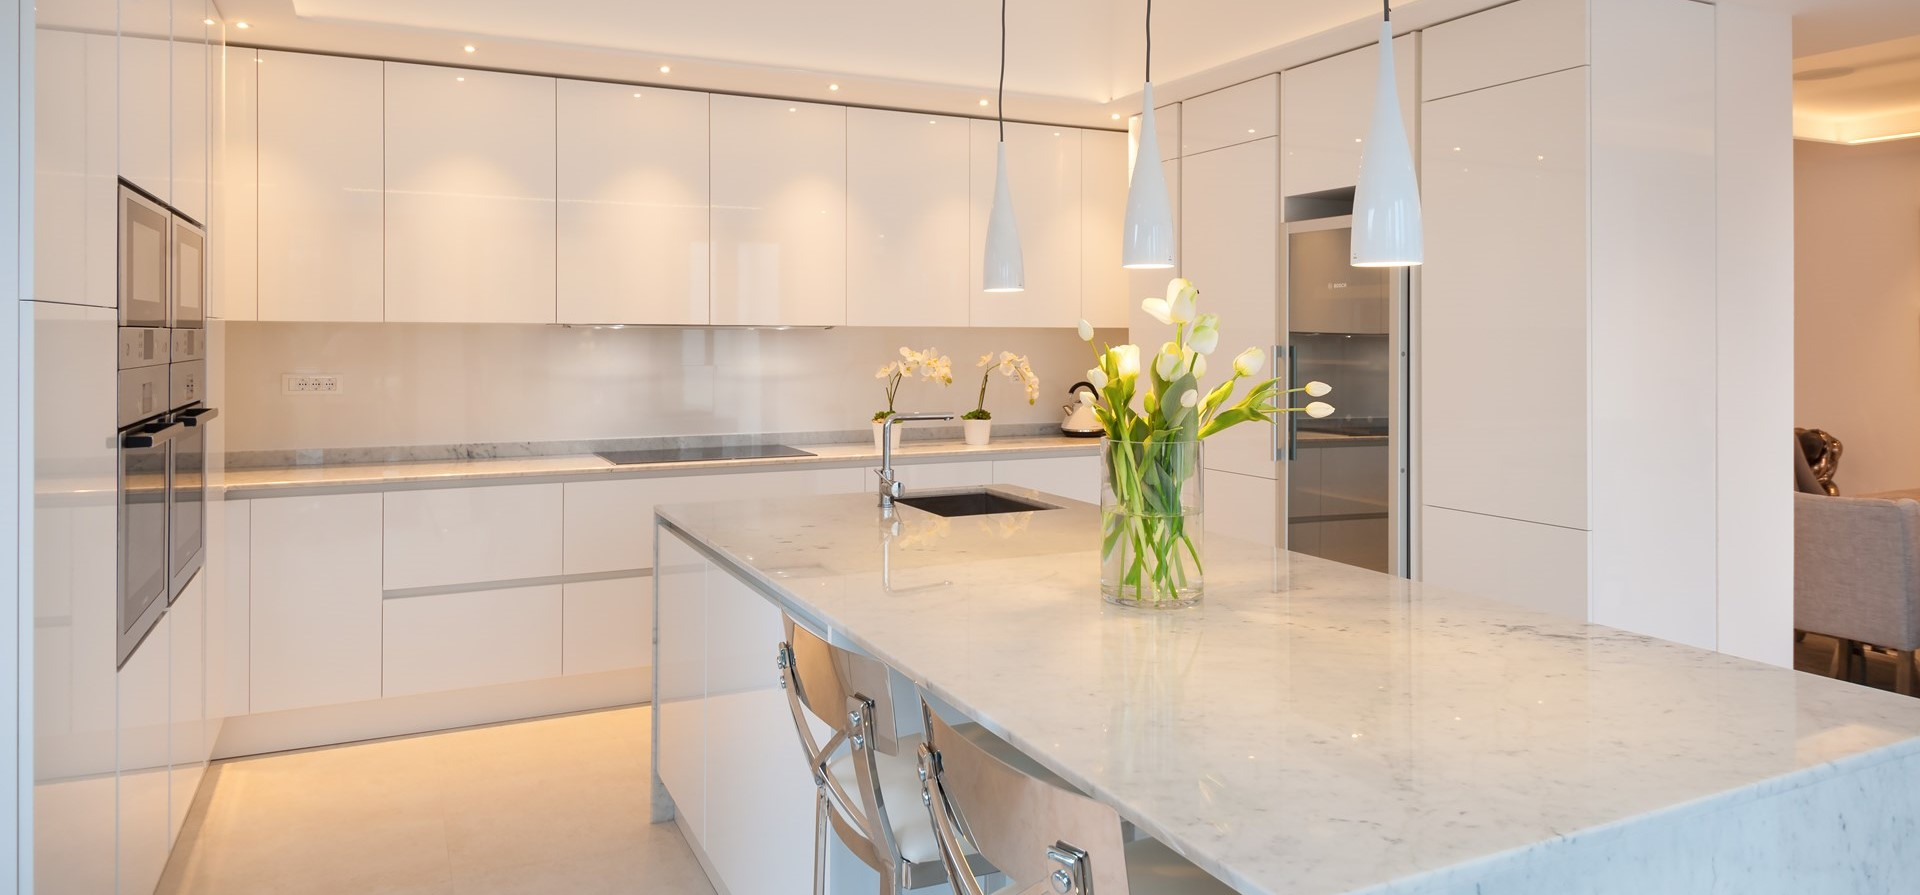 sumartin-bay-house-brac-kitchen